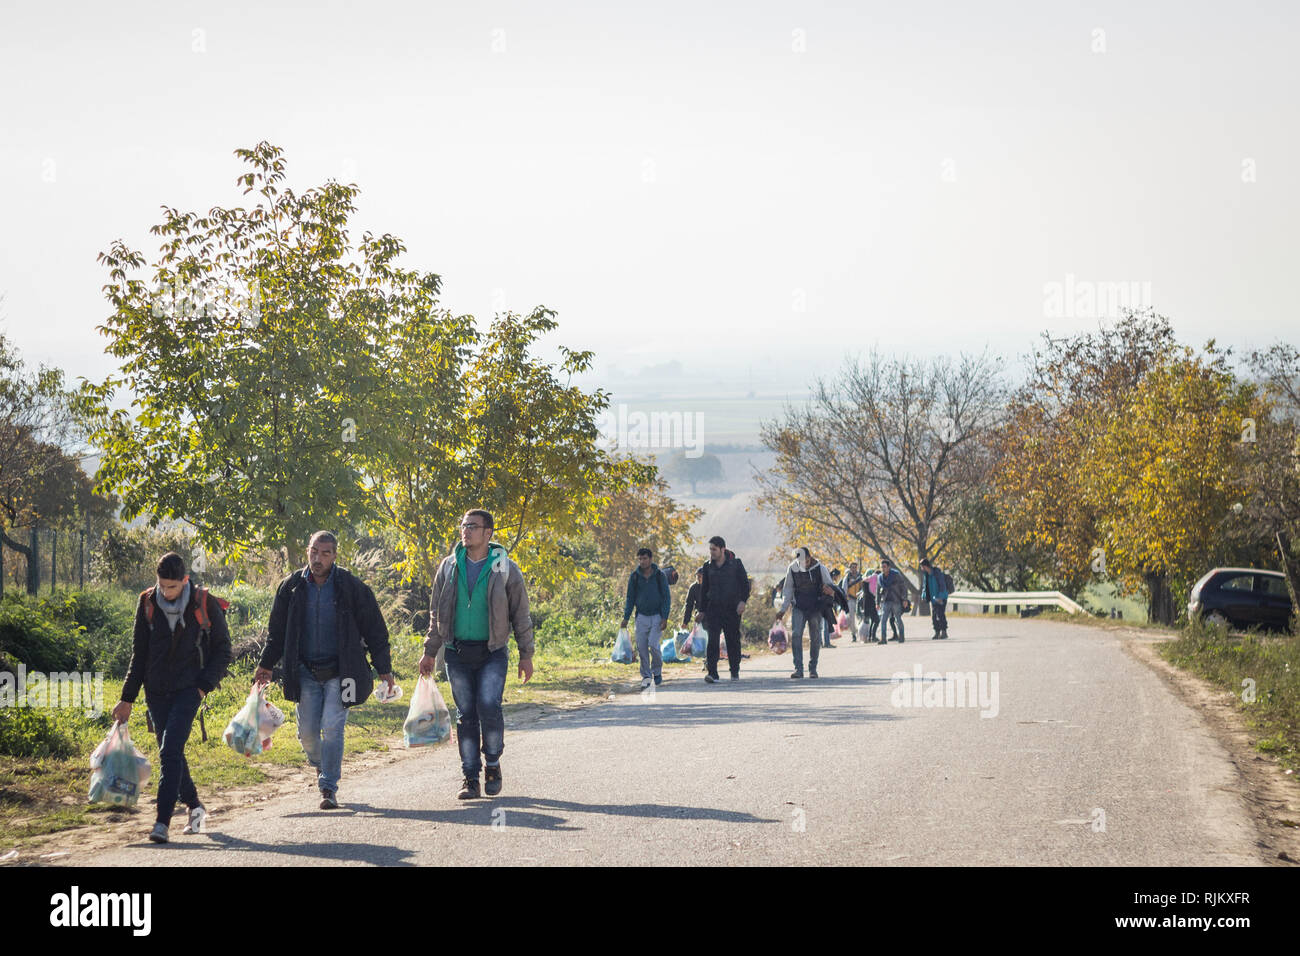 BERKASOVO, SERBIA - OCTOBER 17 2015: Refugees walking with heavy bags on the way to Croatia on the Croatian Serbian border, on the Balkans Route, duri - Stock Image